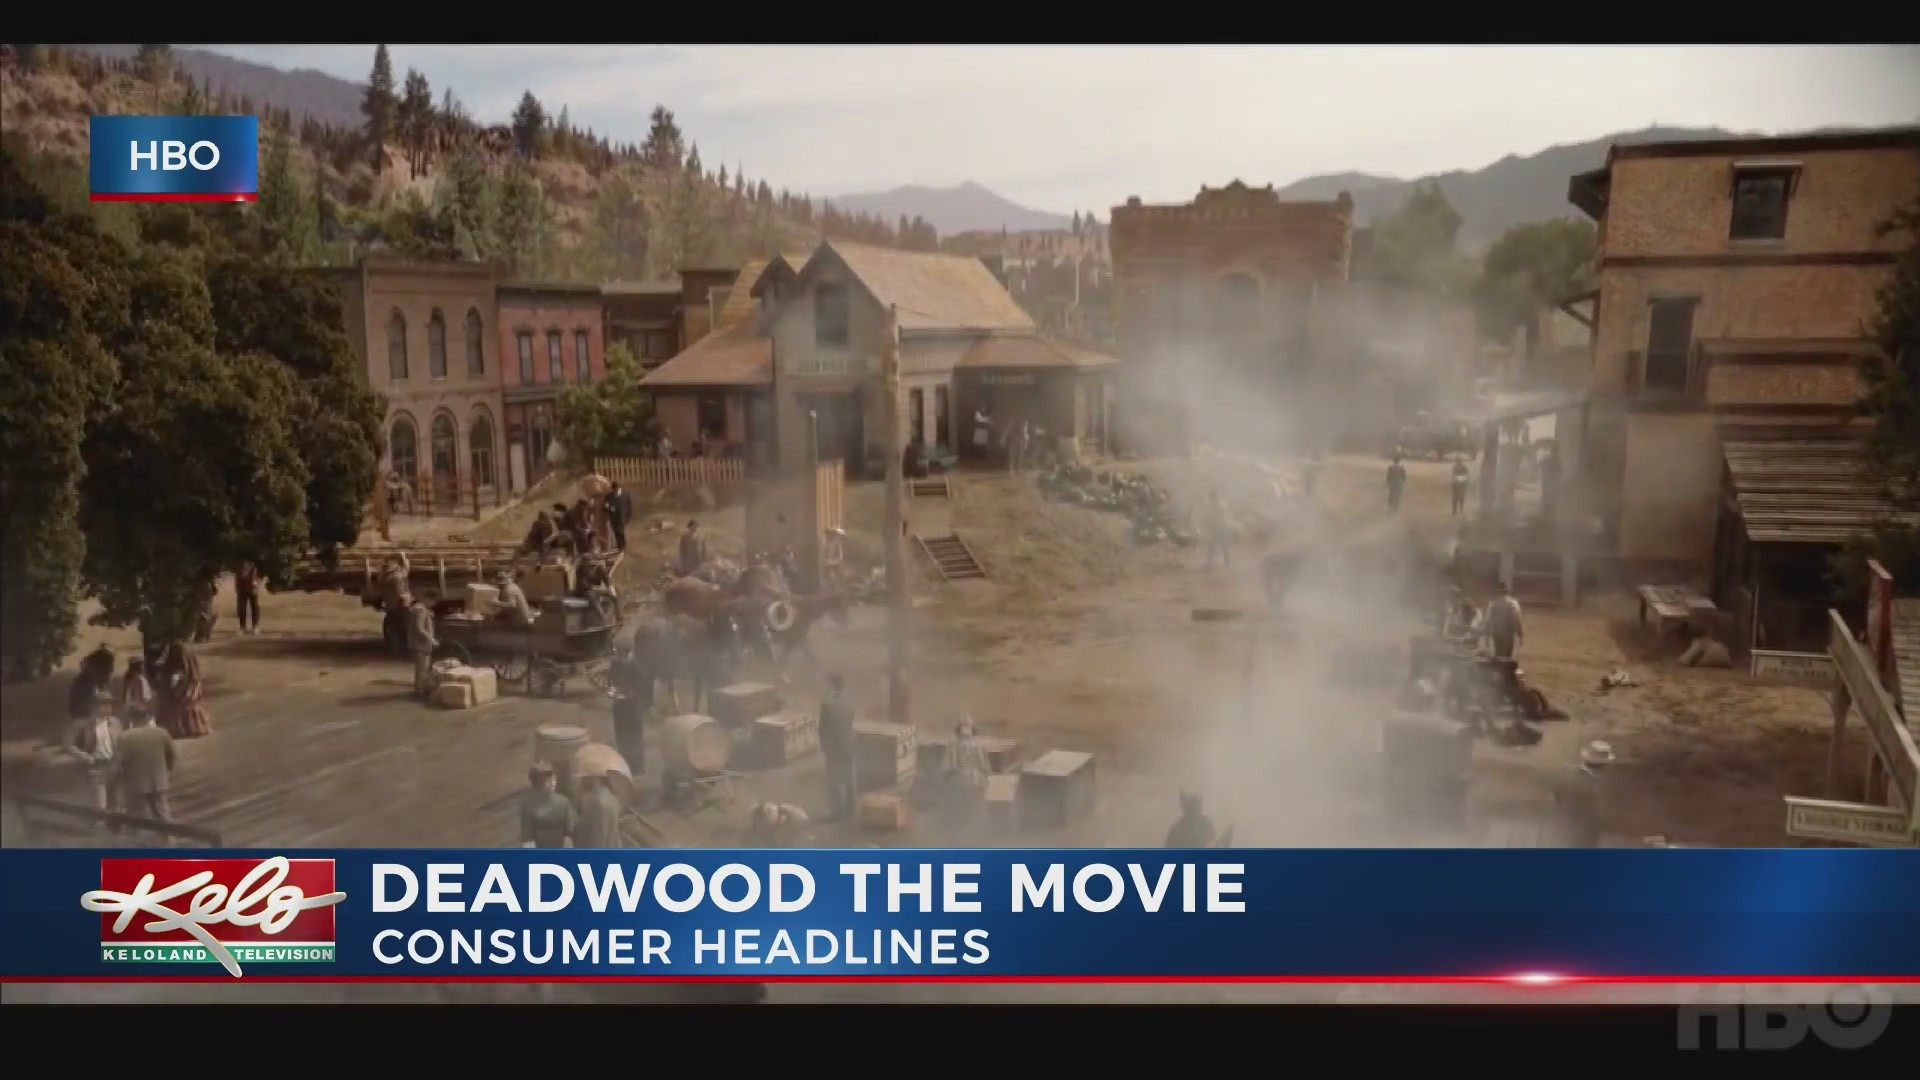 Deadwood the Movie premiere coming to KELOLAND